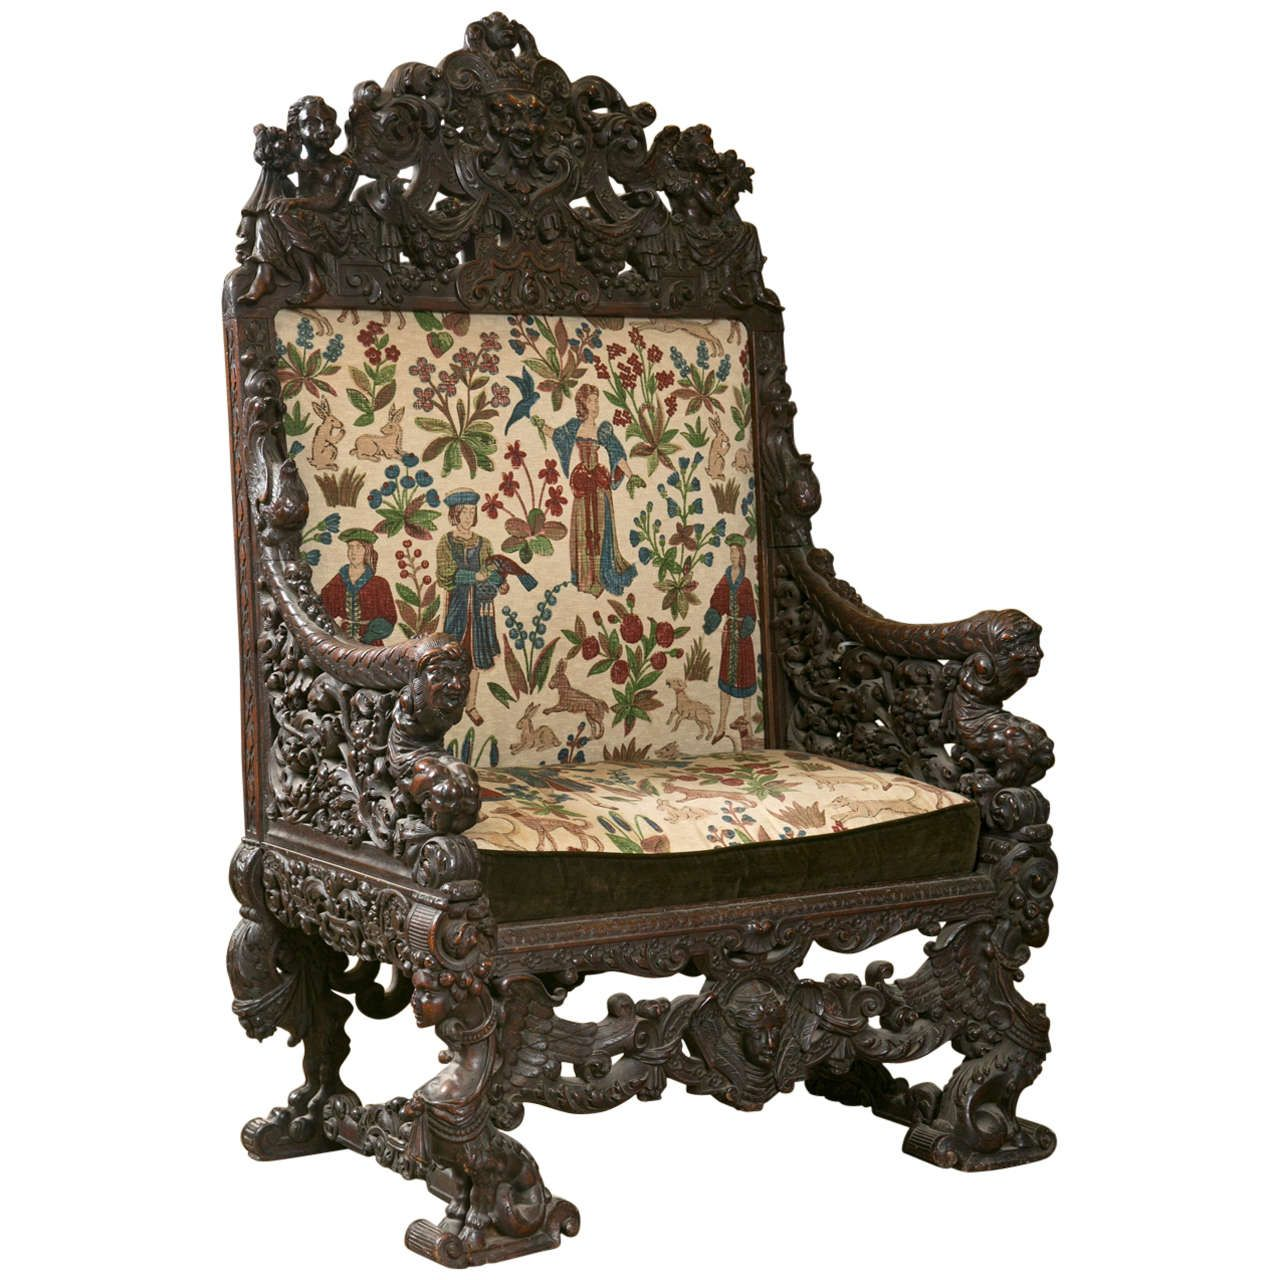 kings chair for sale covers chairs pin by mary and ed curry on unique pinterest throne antique oversized carved medieval from a collection of modern armchairs